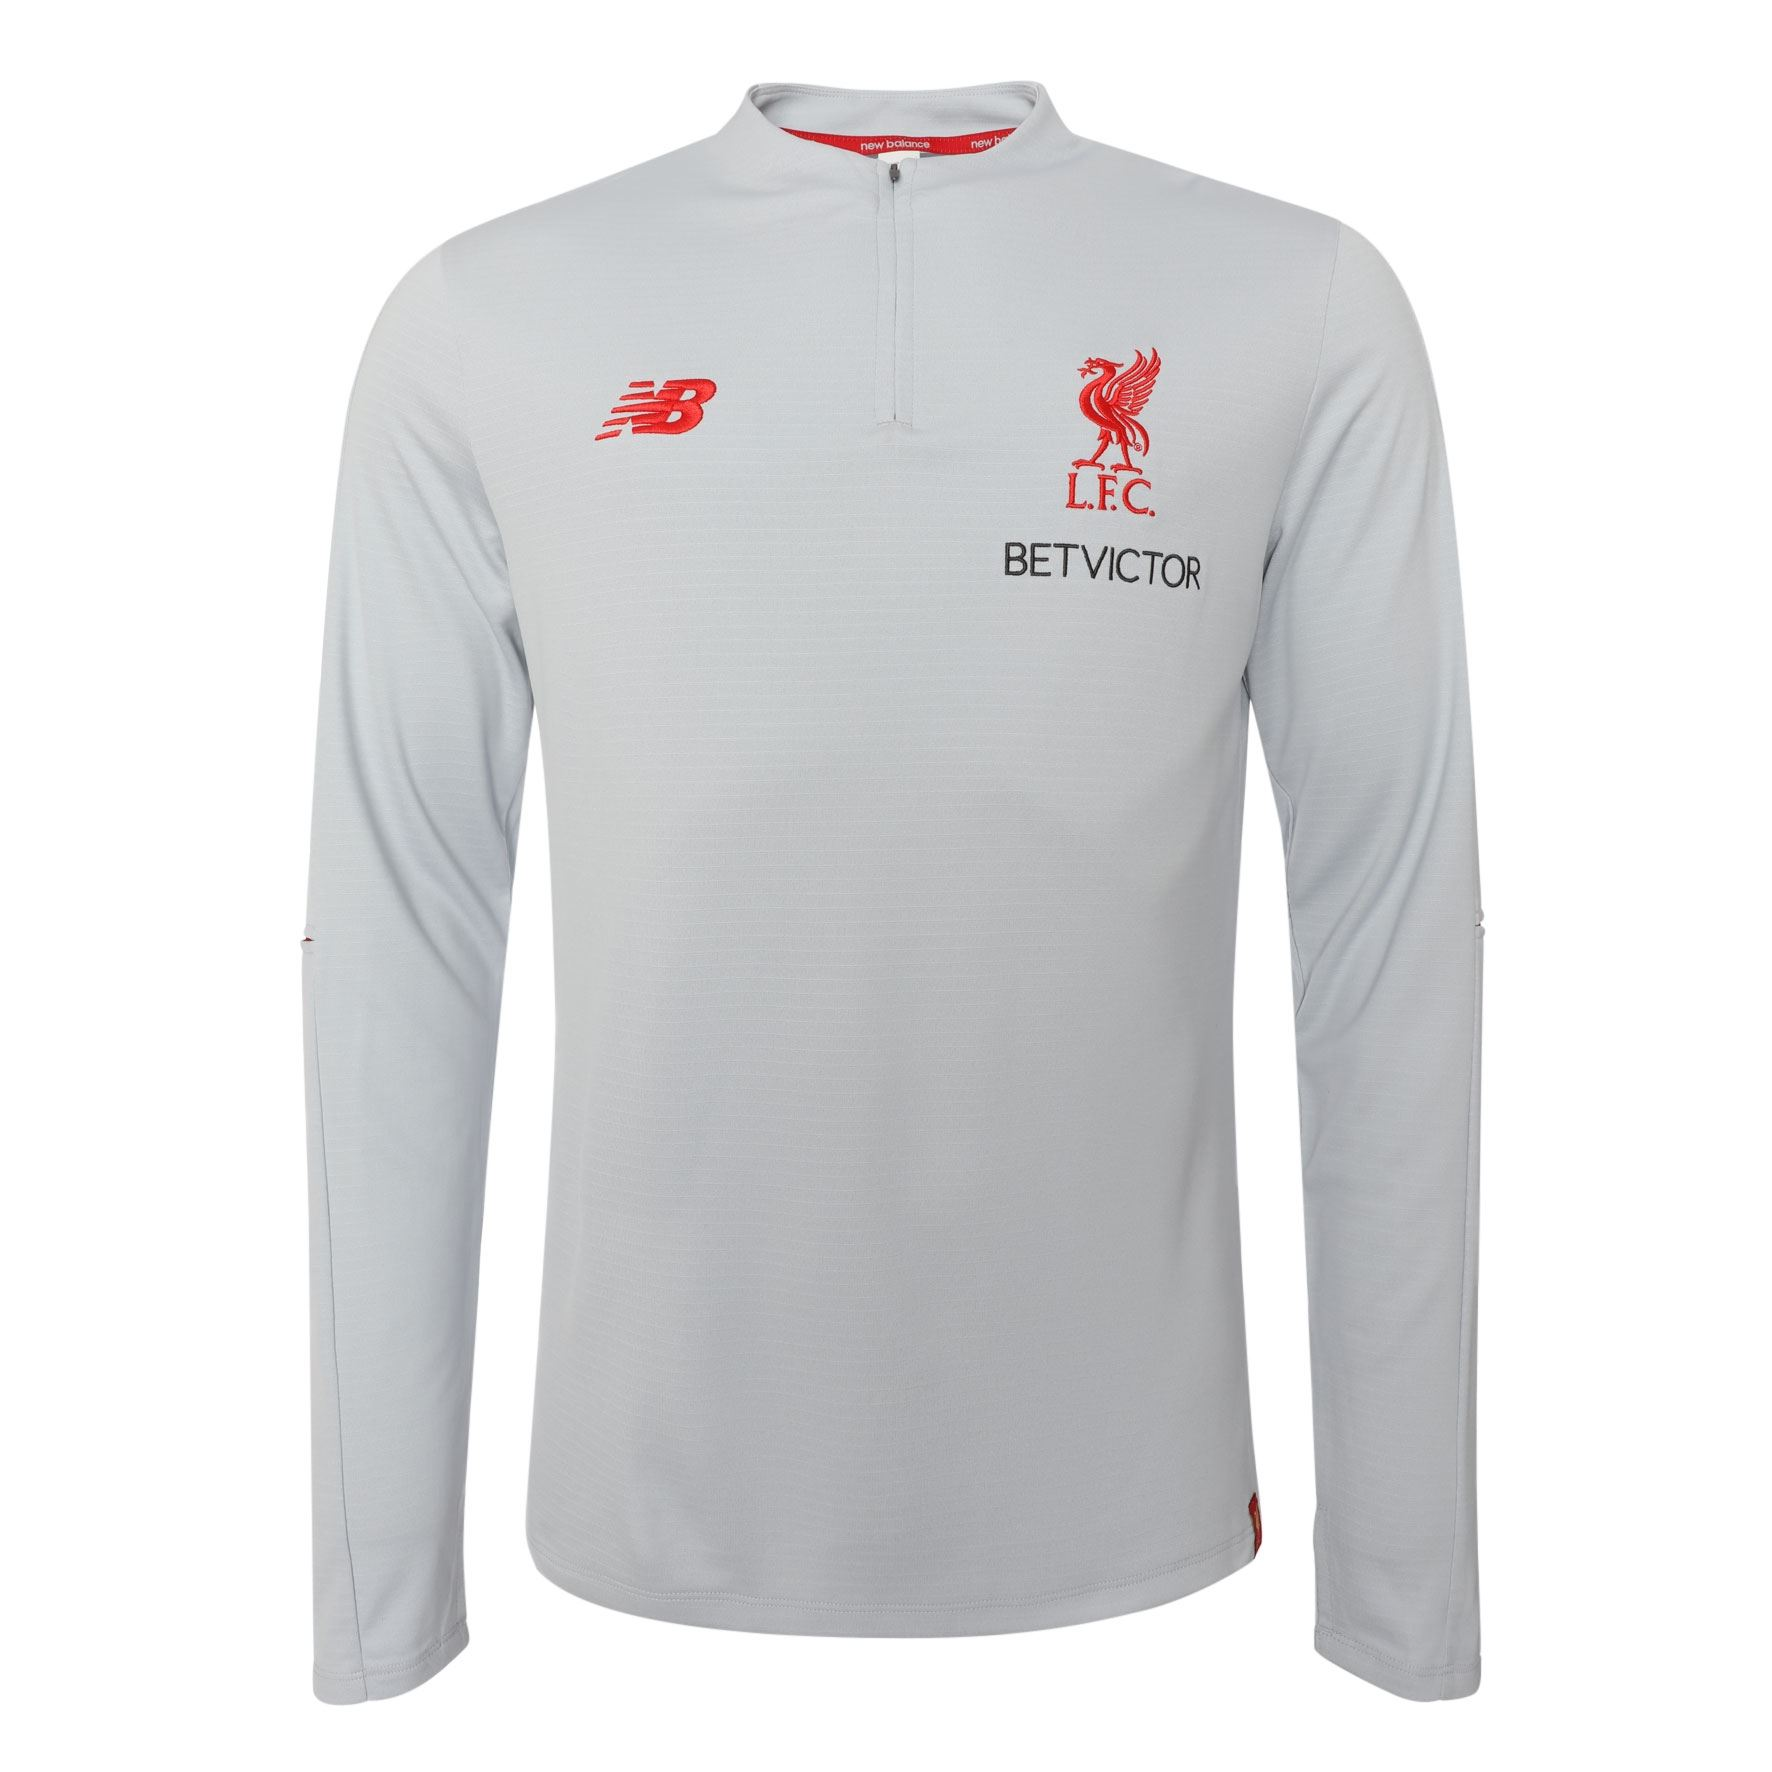 9afda4ff604 Details about Liverpool FC Grey Mens Soccer Elite Training Midlayer Jersey  18 19 LFC Official